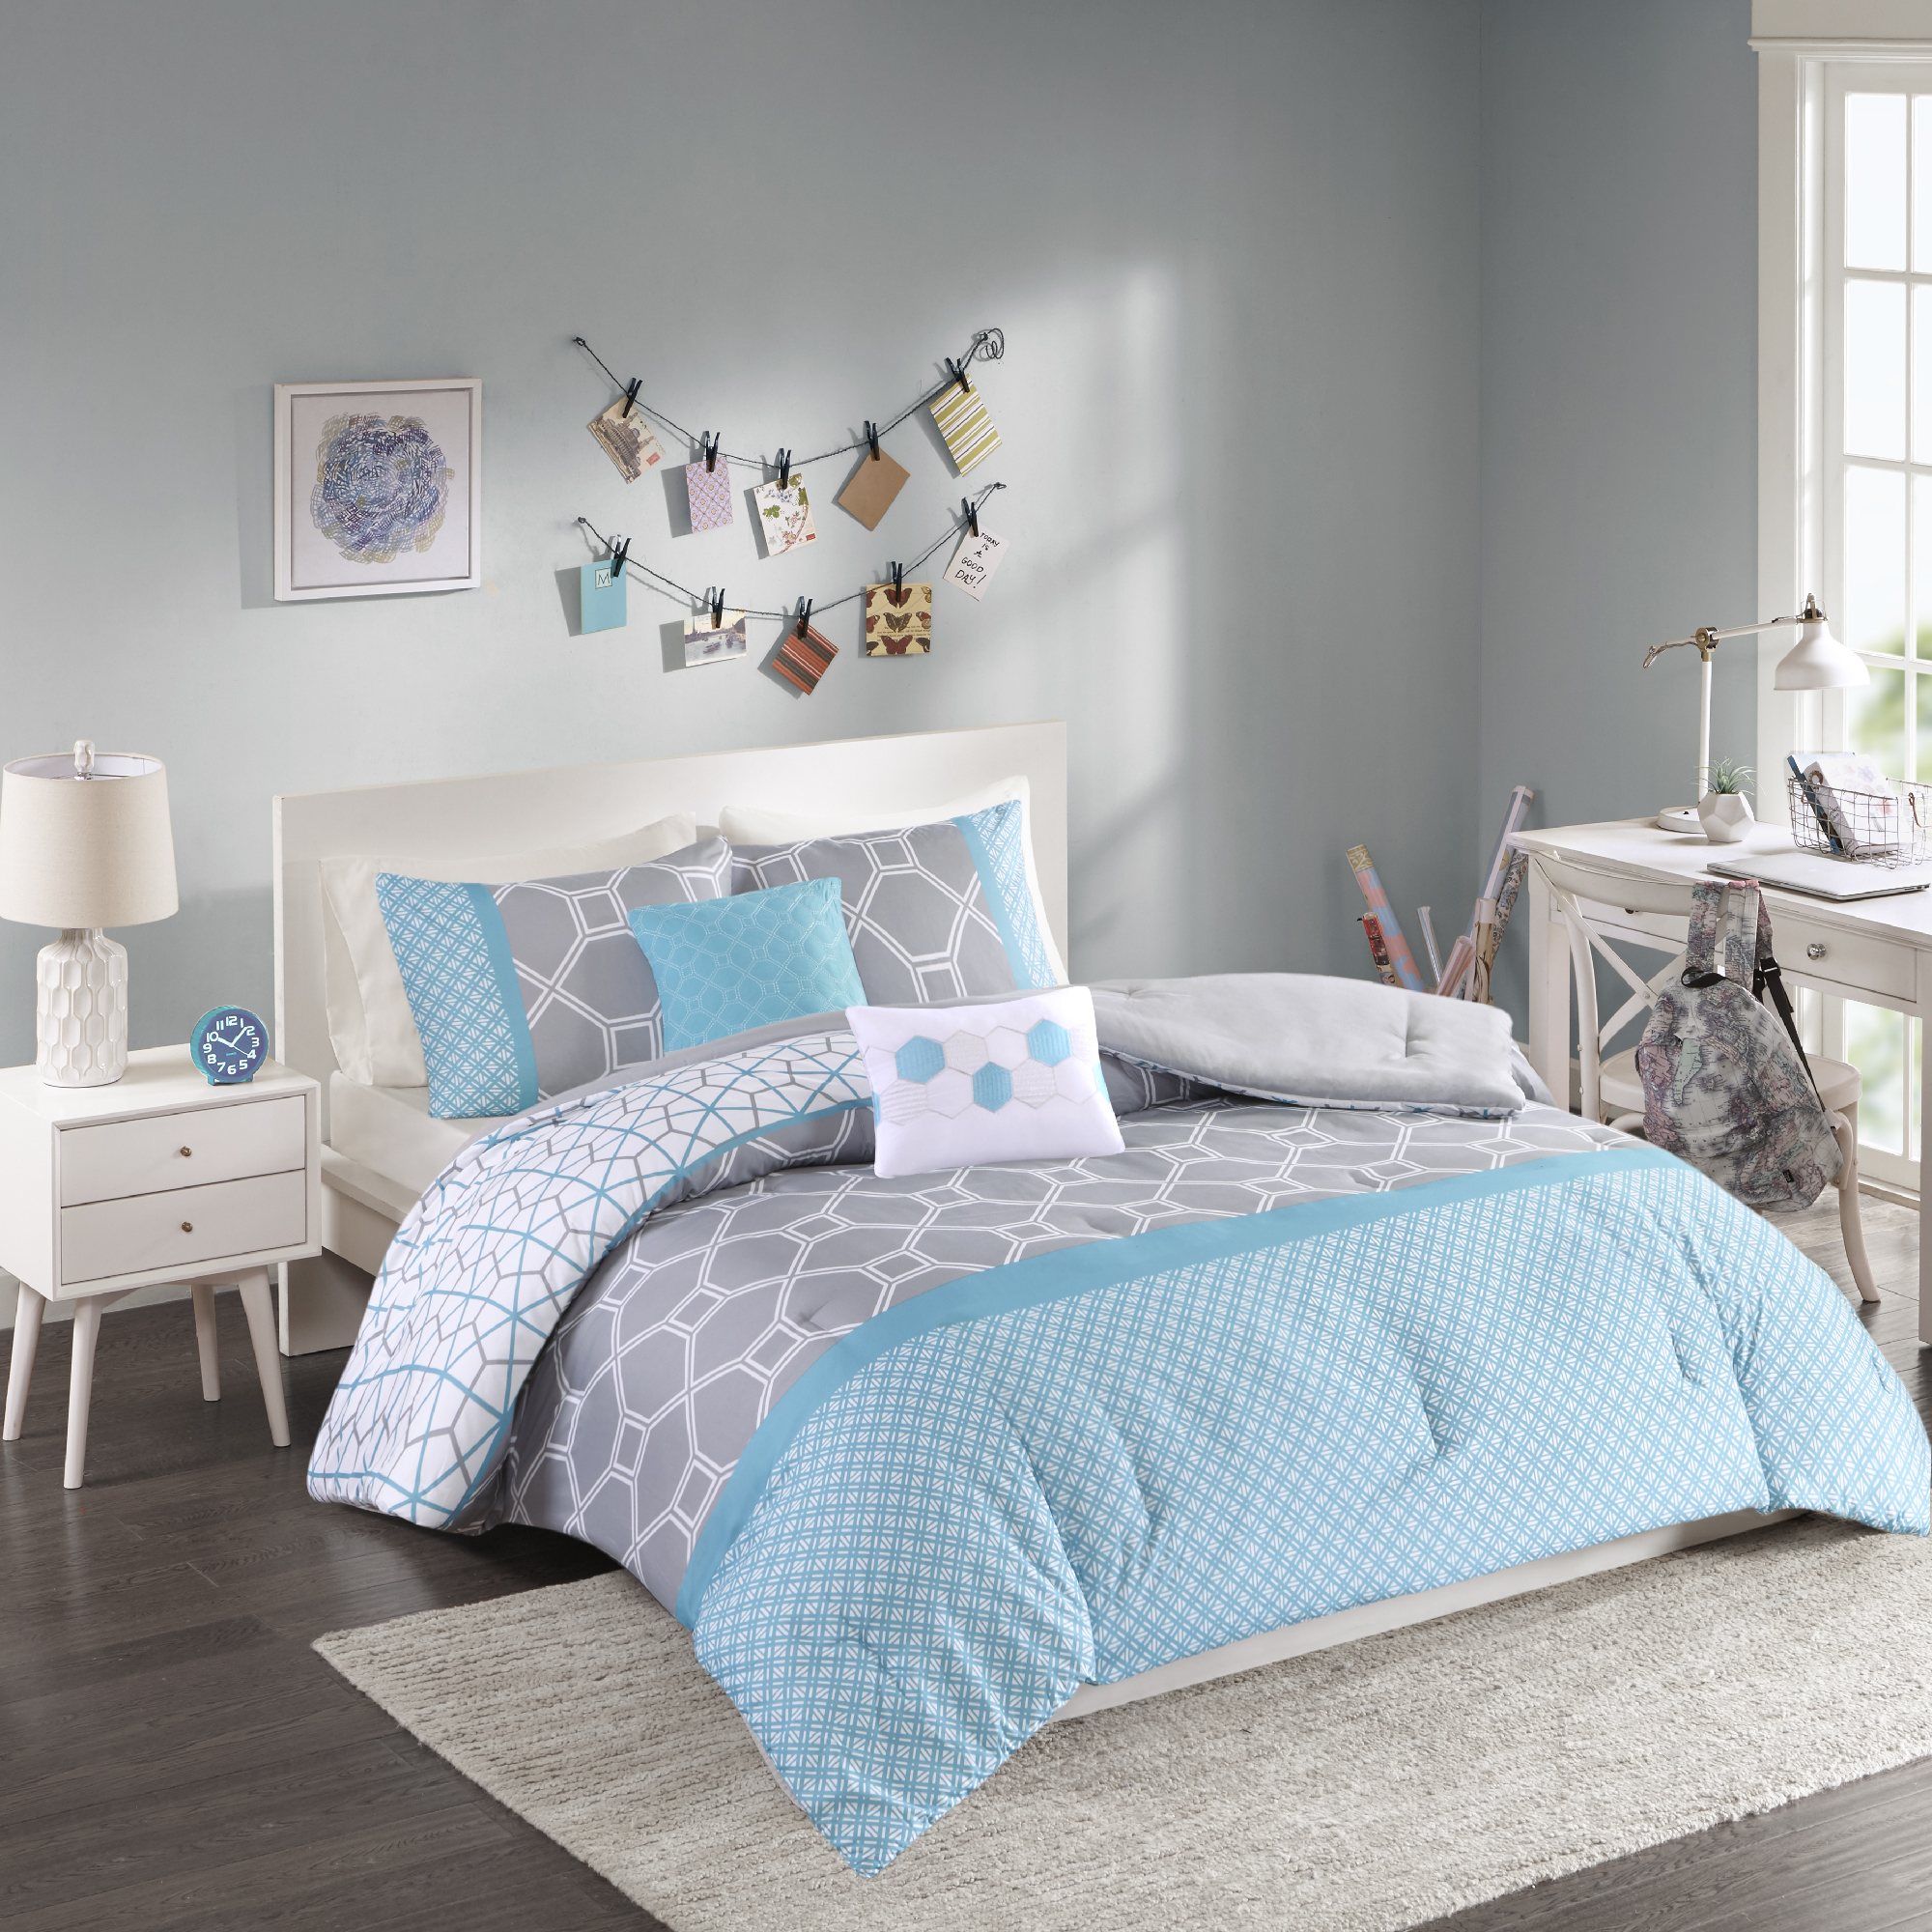 Luxury Comforter Set in Gray-Blue Geometric Print, Choose Your Size